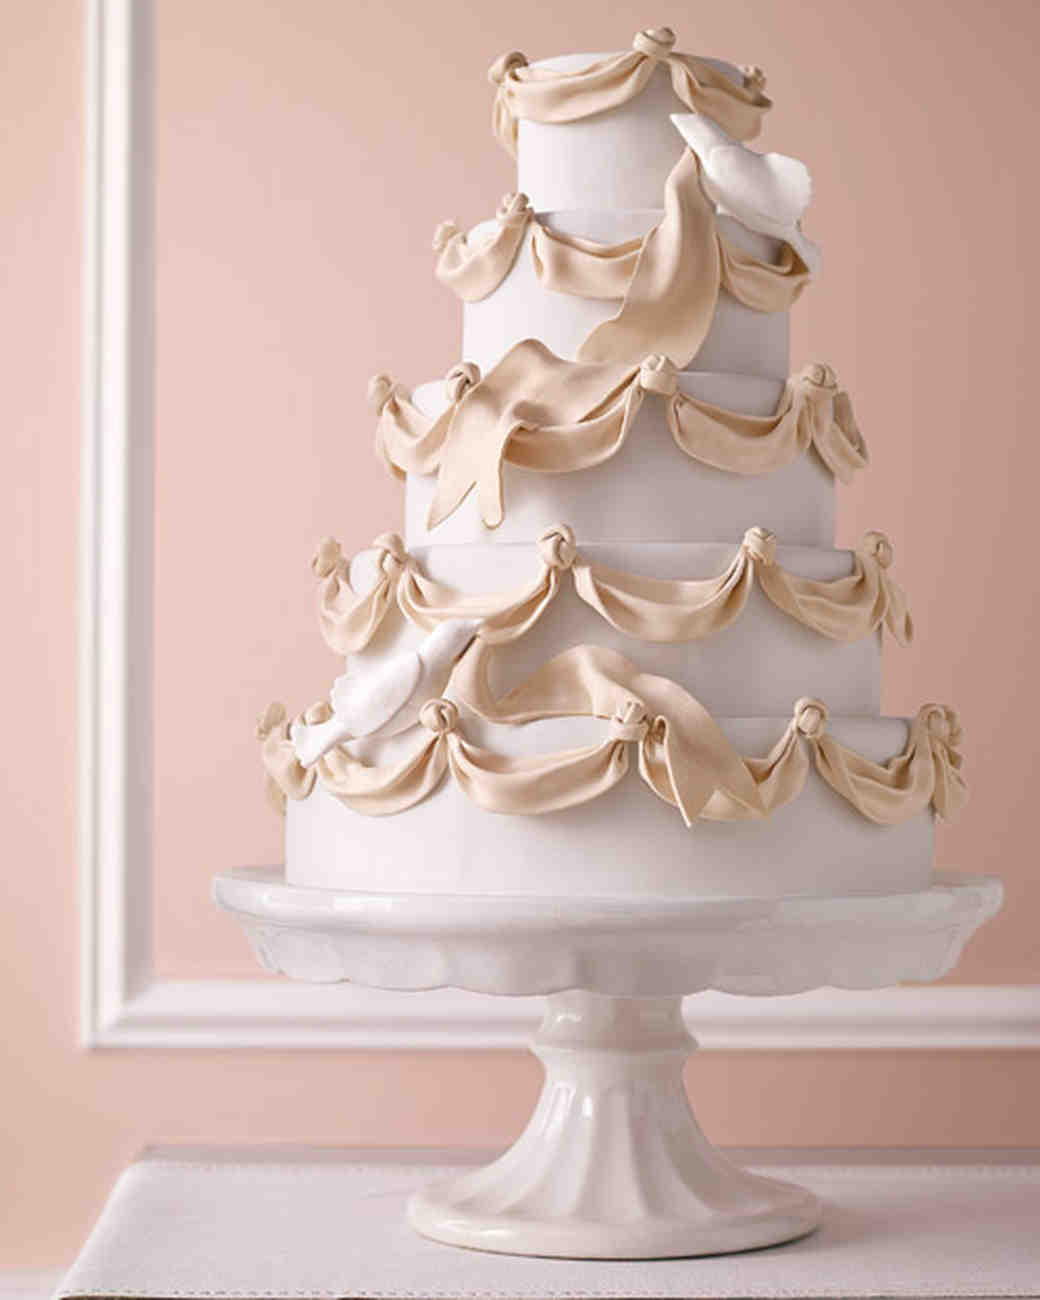 Five-Tiered White Wedding Cake with Cream-Colored Ribbon and Edible Doves